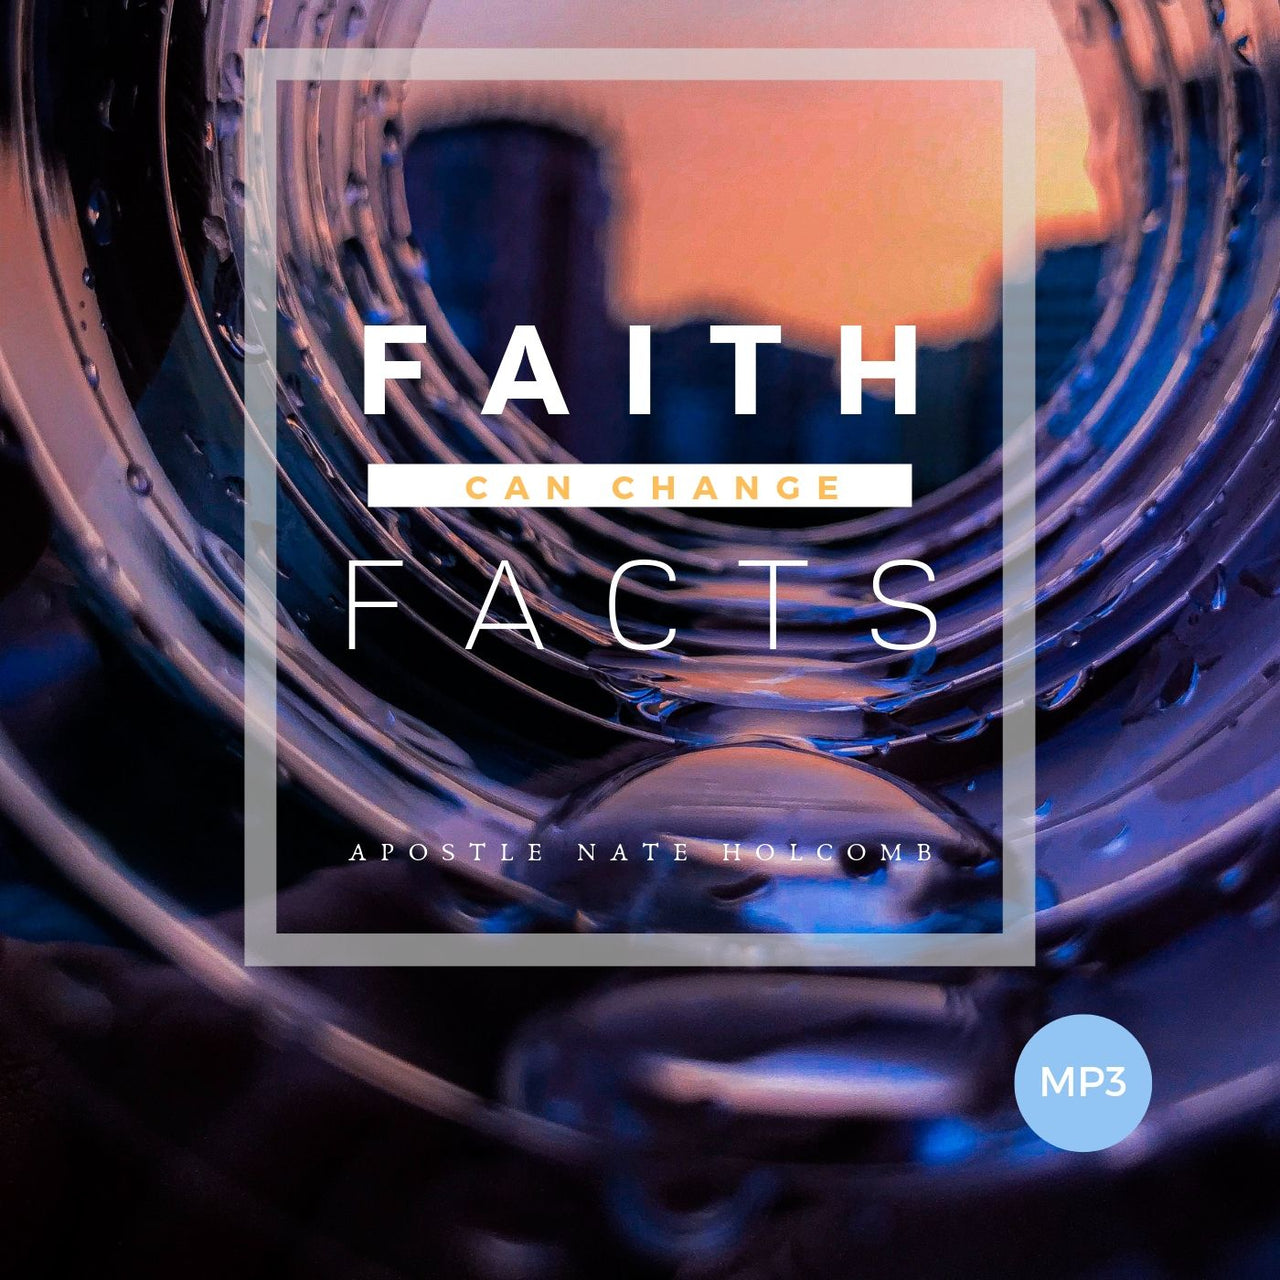 Faith Can Change Facts